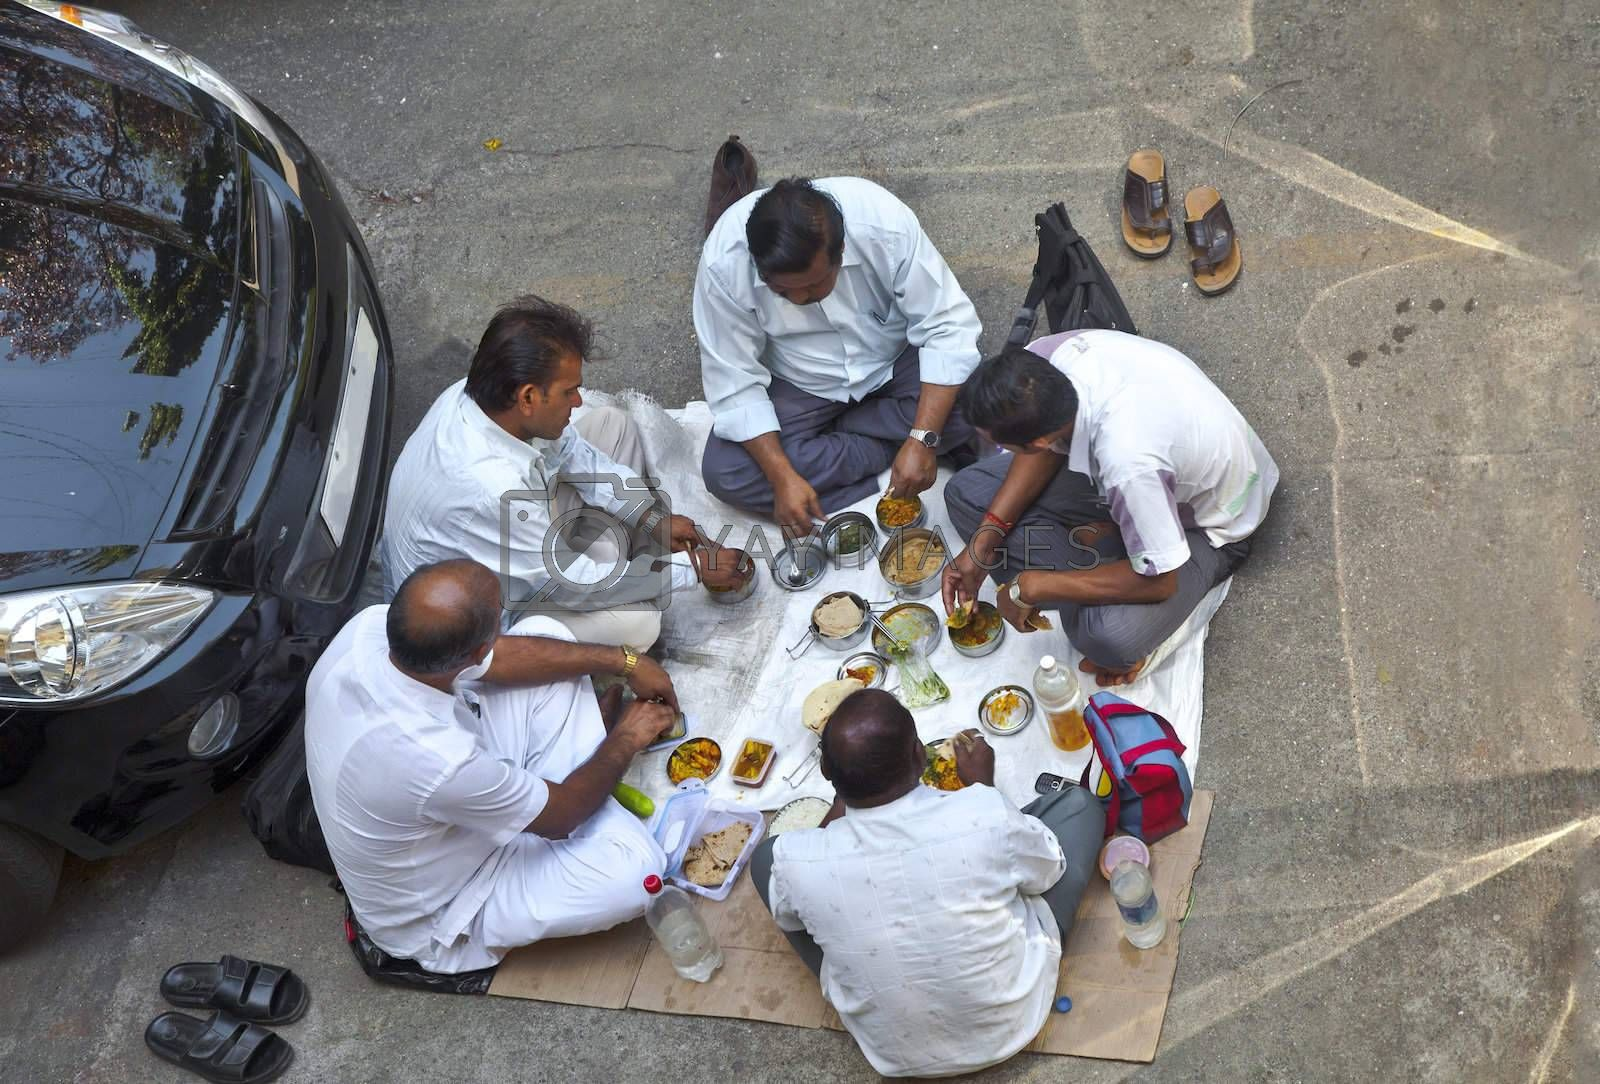 Ariel shot of Indian private car drivers having lunch in a public car park near their vehicles. Location of shot, Bombay India